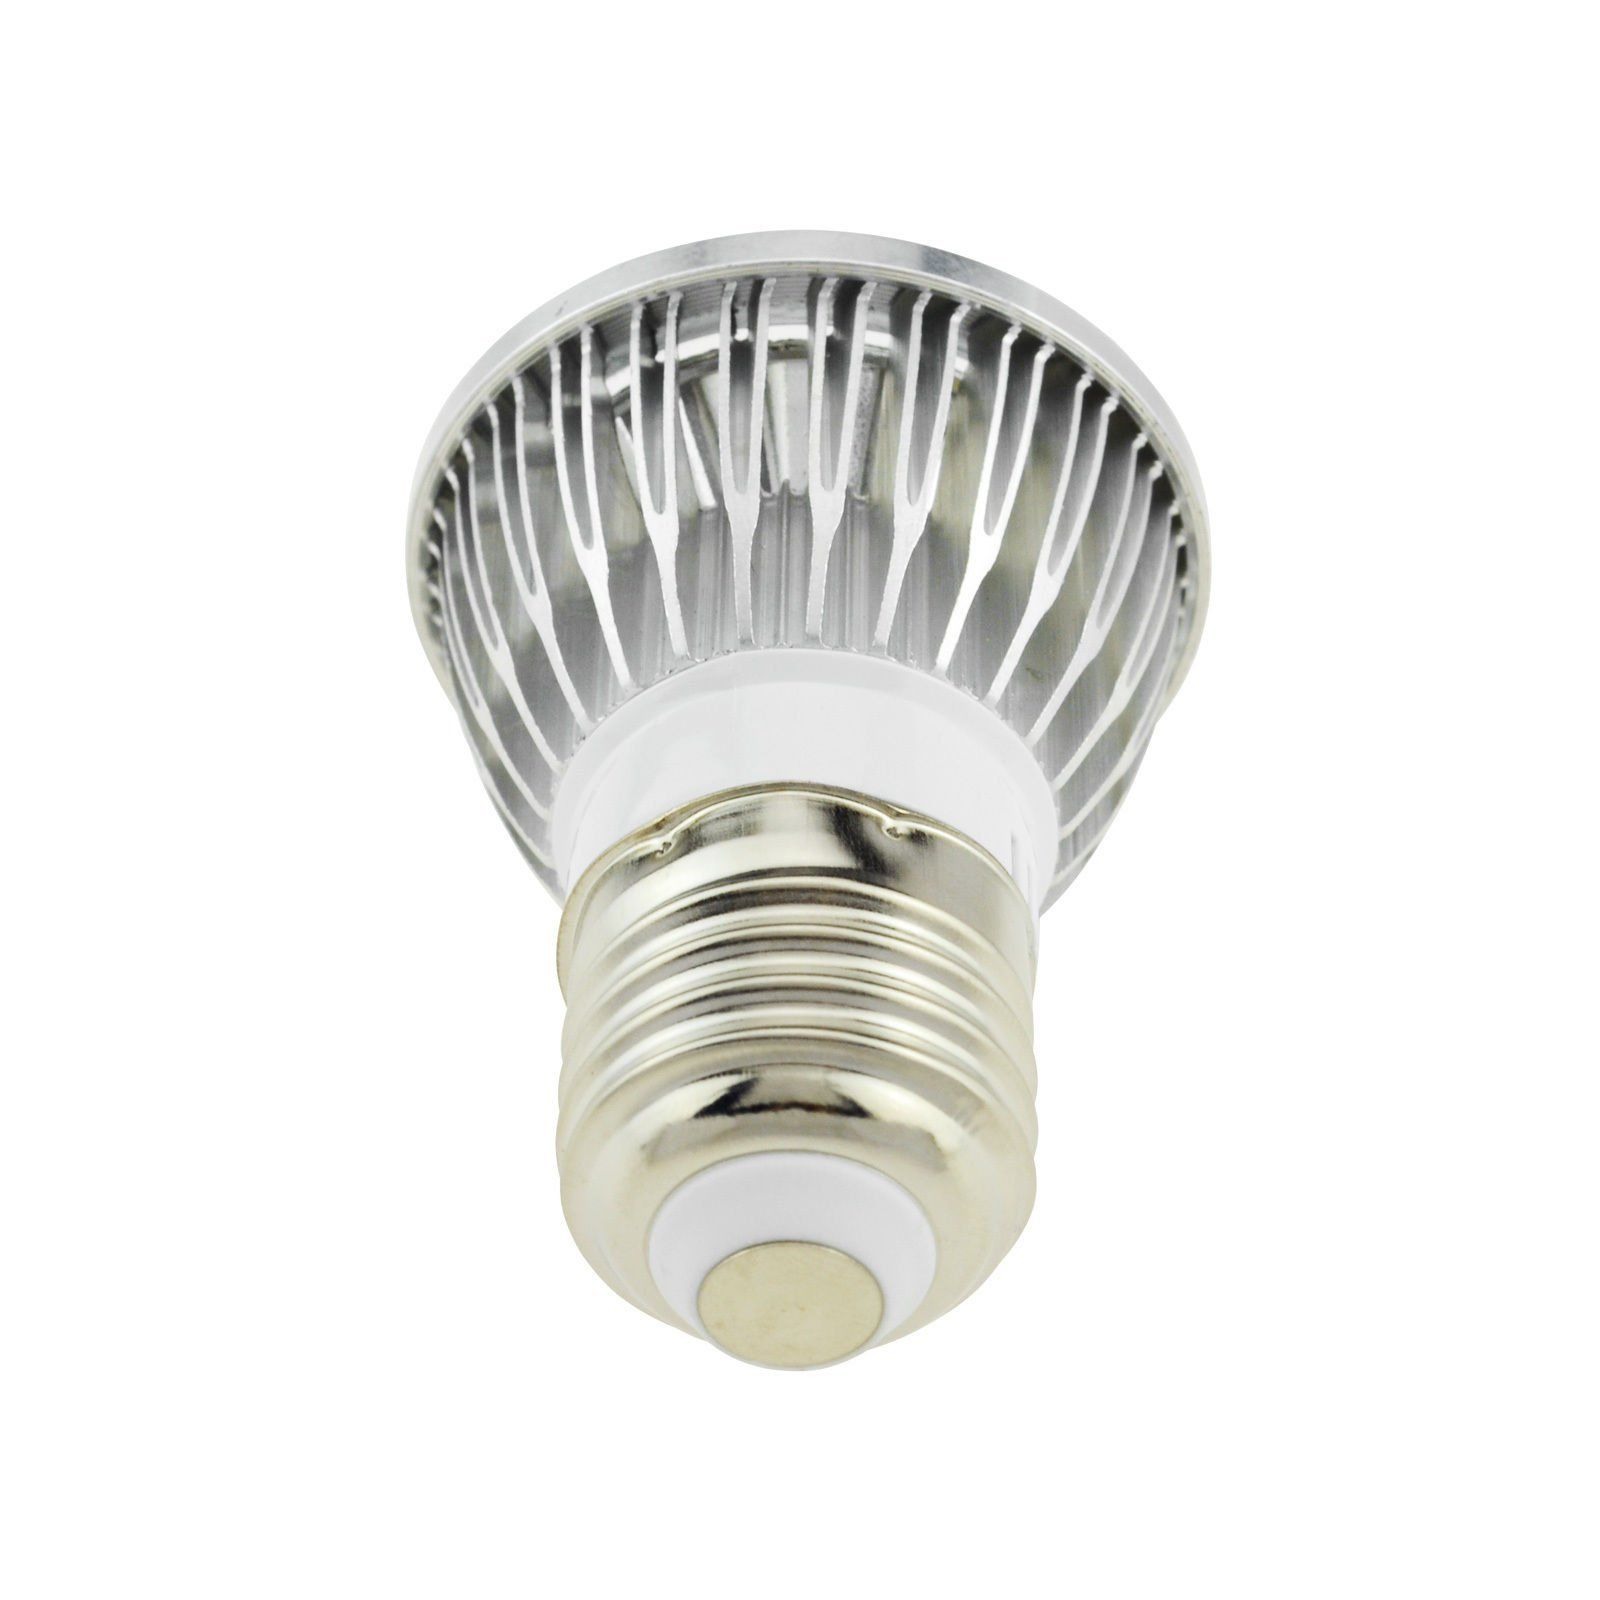 Ultra Bright Mr16 Gu10 E27 E14 Dimmable 6w 9w 12w Led Cob Spot Light Bulbs Cree Dimmable Gu10 Mr16 E27 E14 6w 9w 12w Led Cob Spot Light